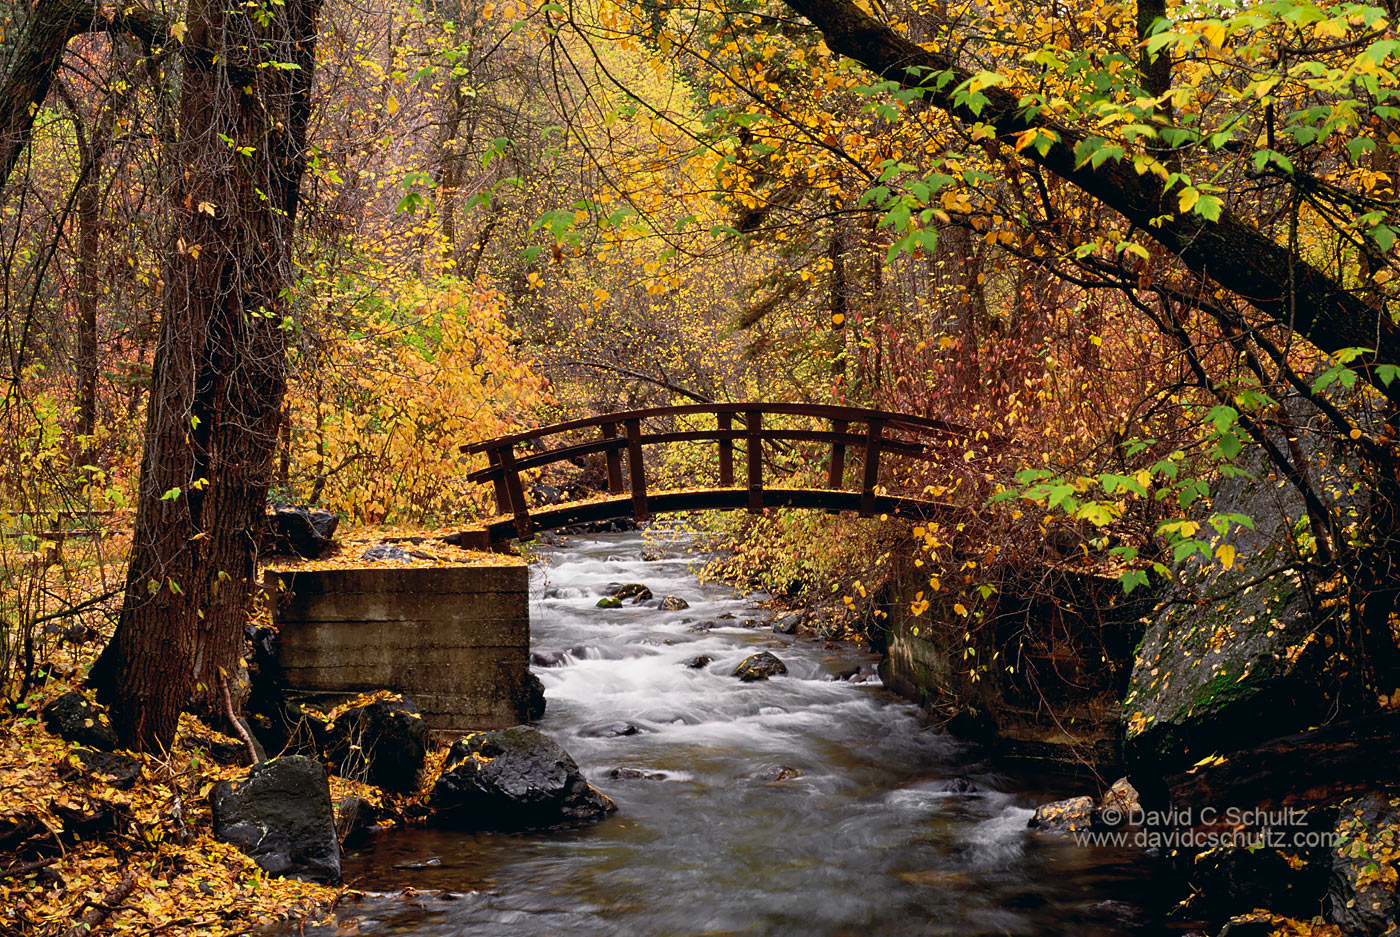 Autumn in the Wasatch Mountains, Utah - Image #3-870